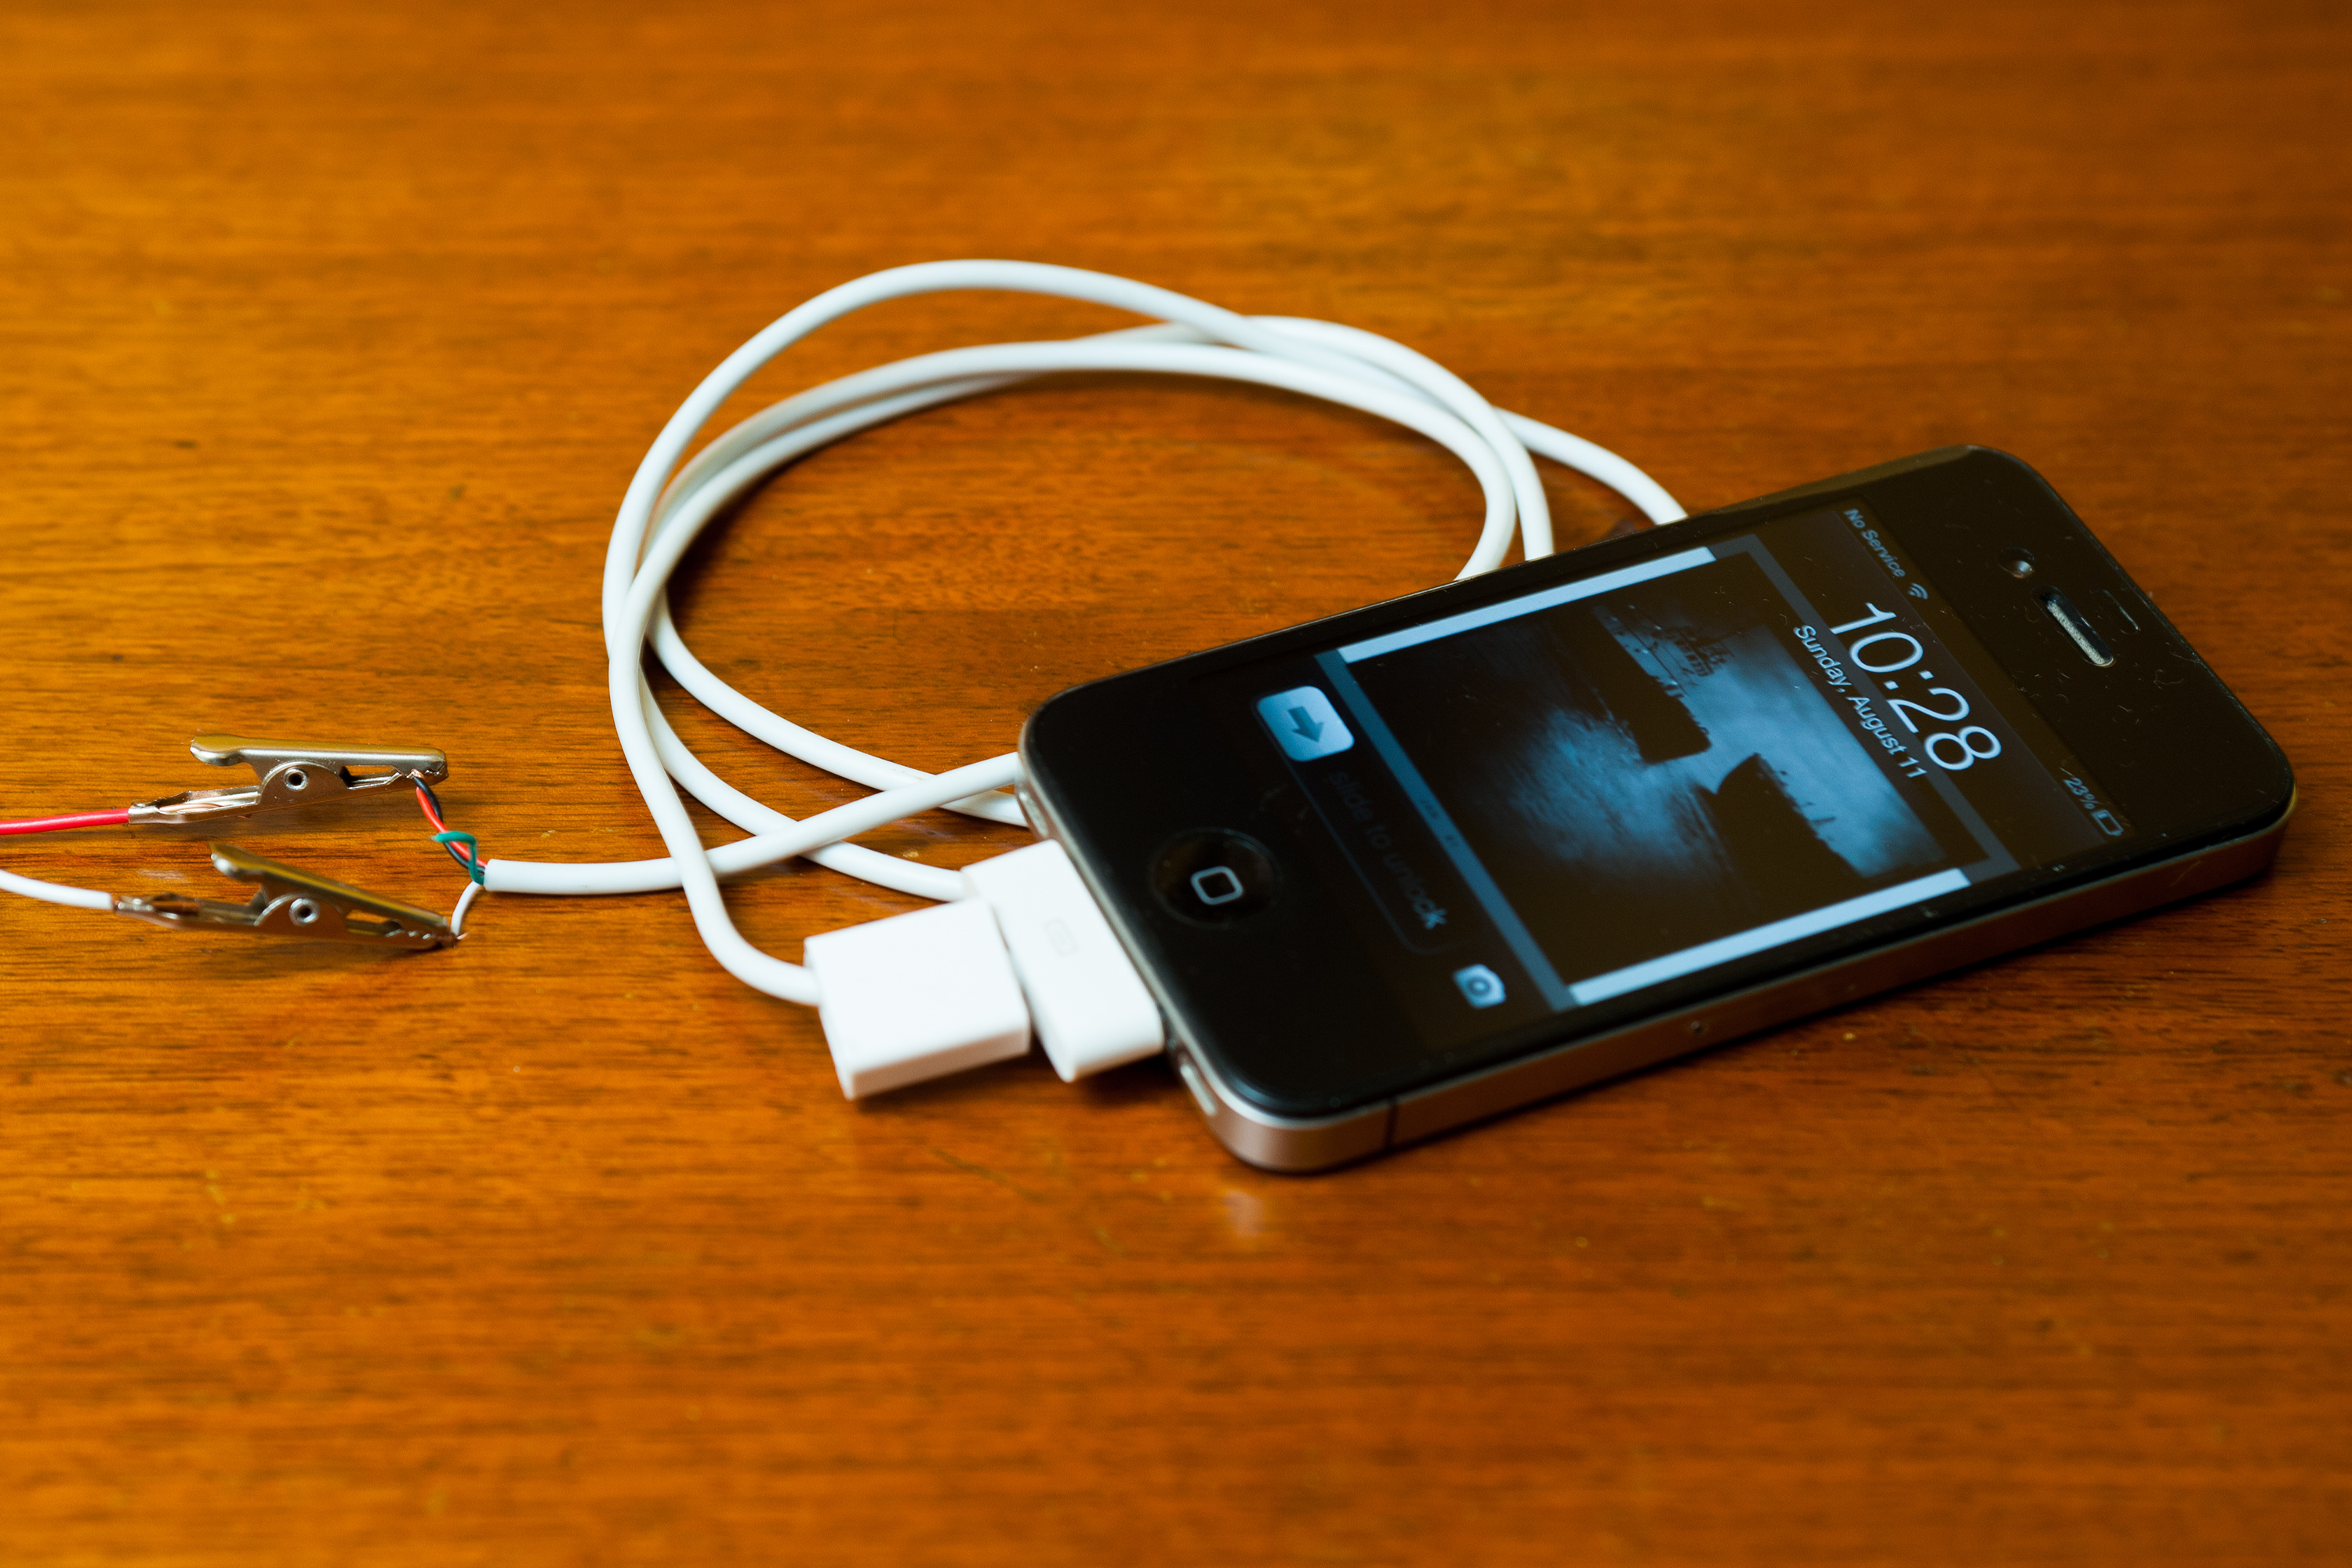 bWays to Charge Your Phone Without a Charger